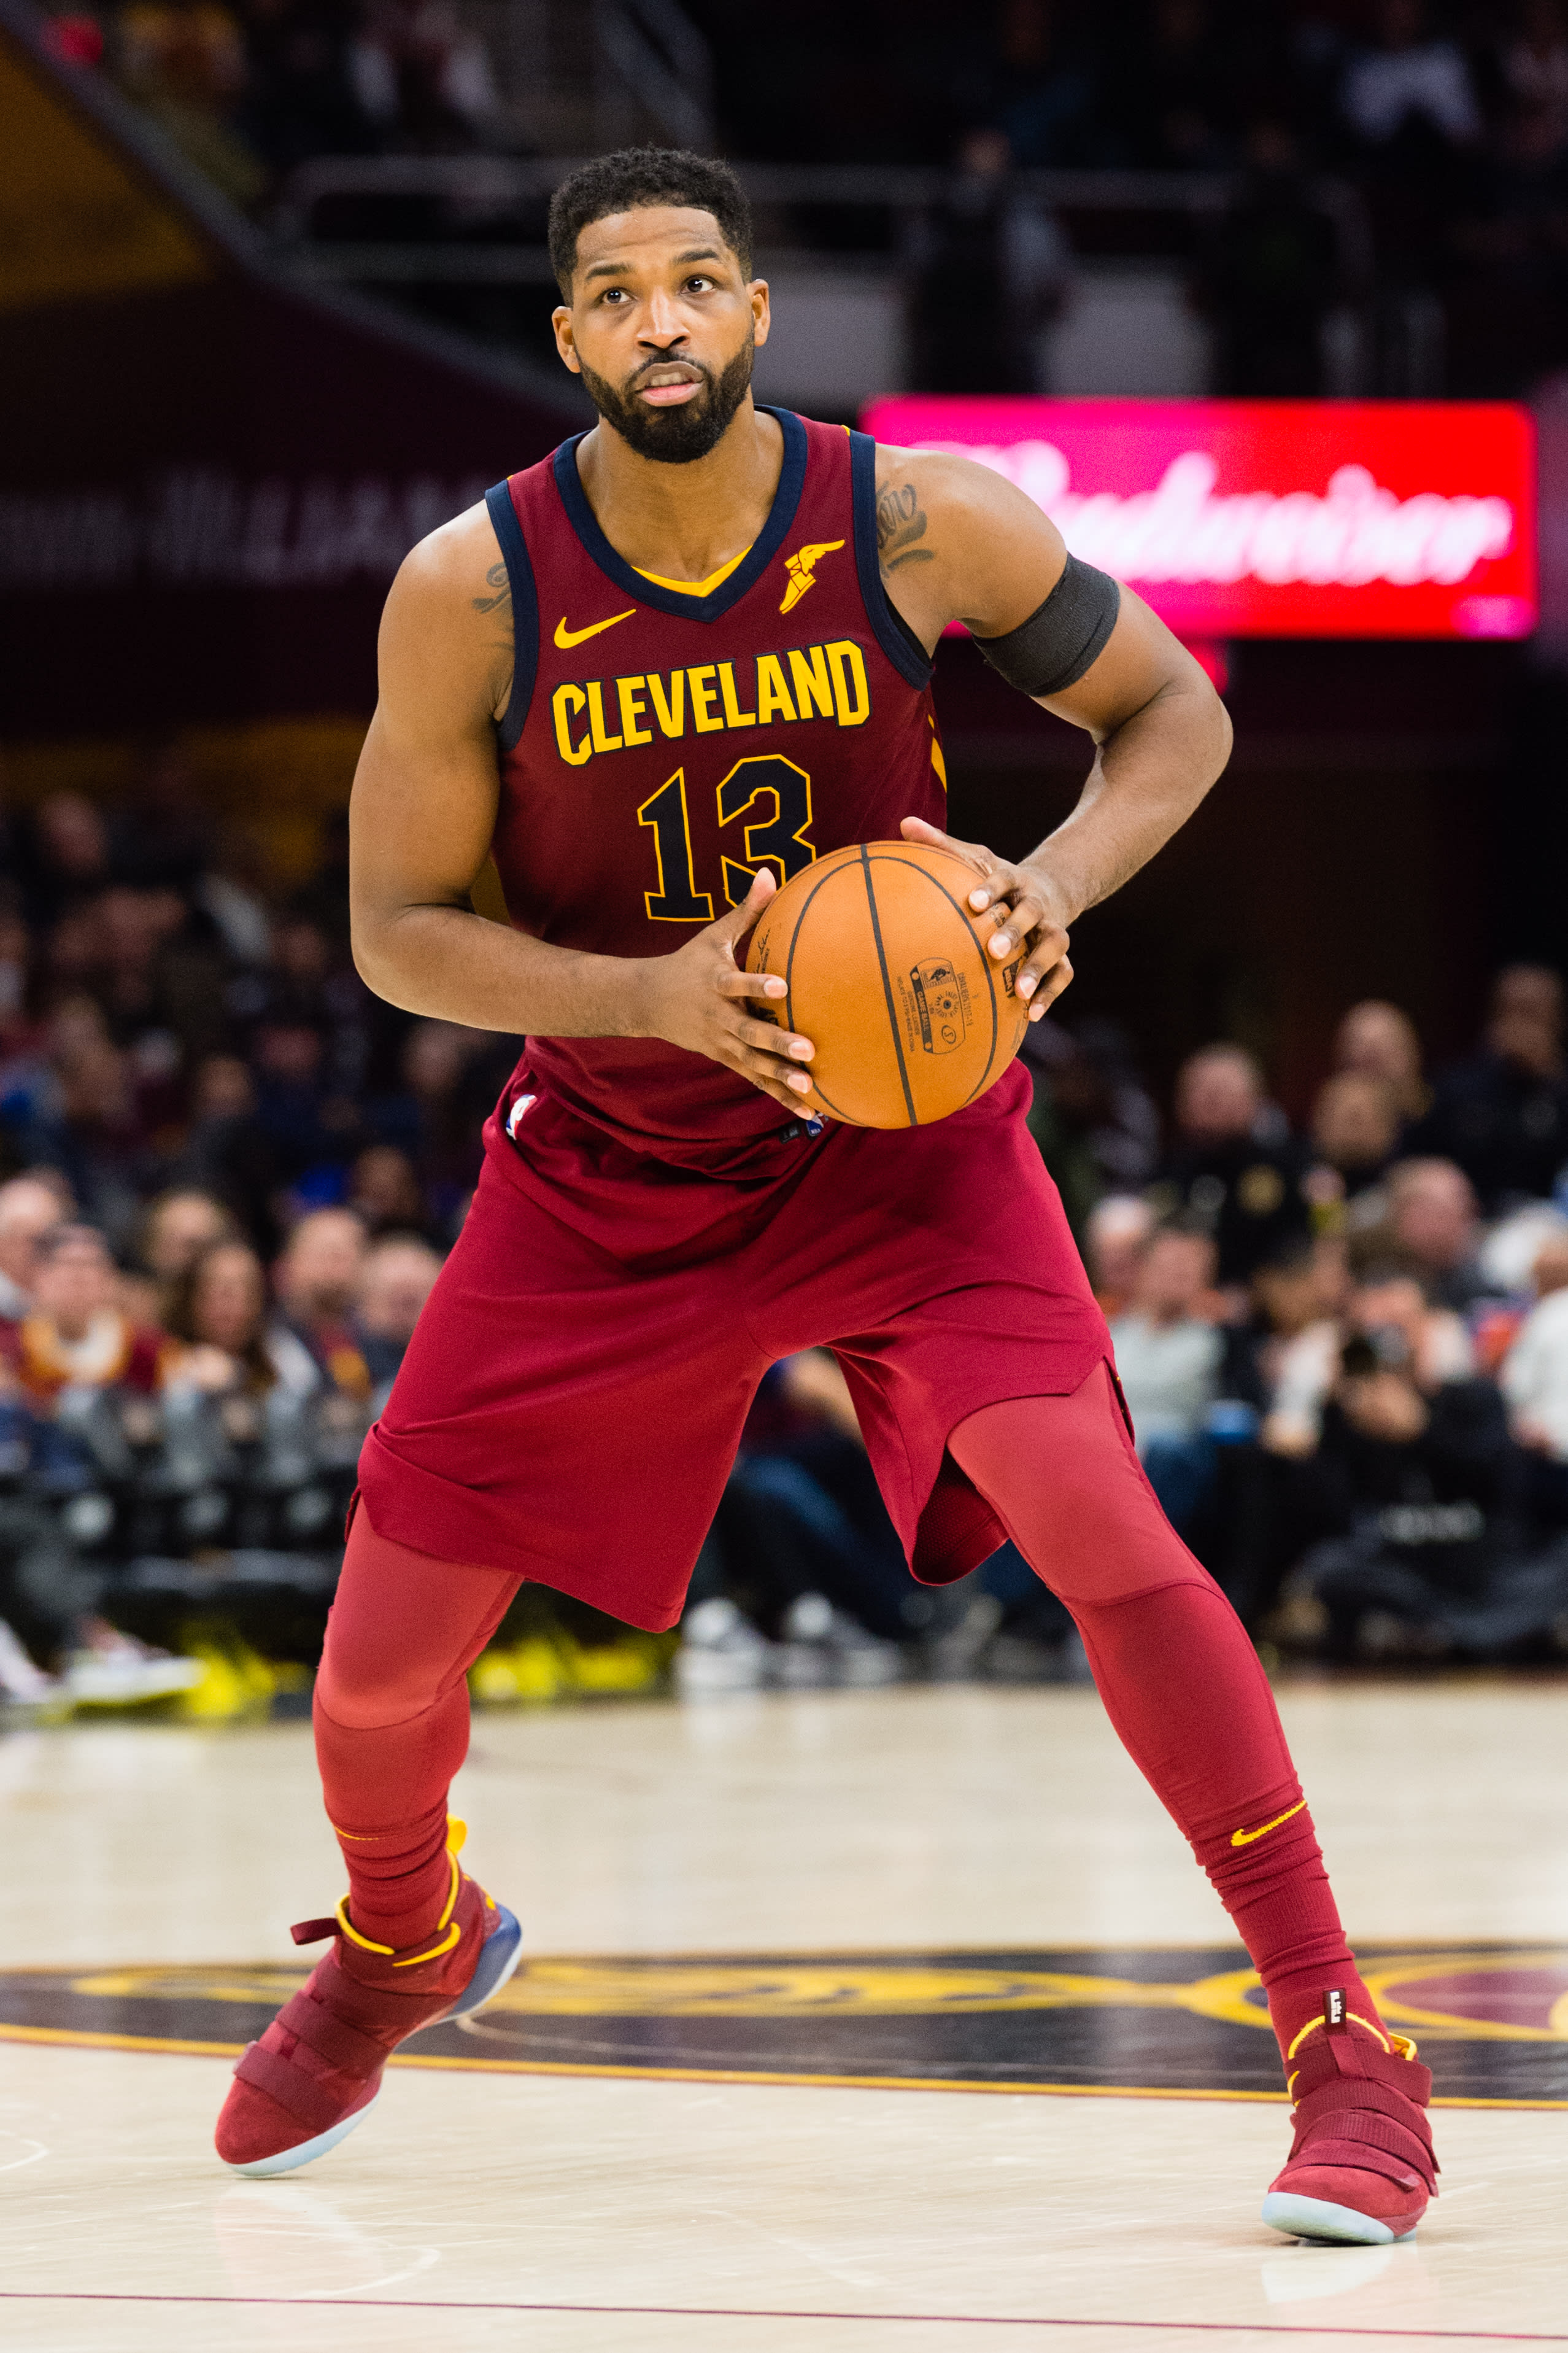 Tristan Thompson Cavs Suffer Humiliating Playoff Upset The Hollywood Gossip